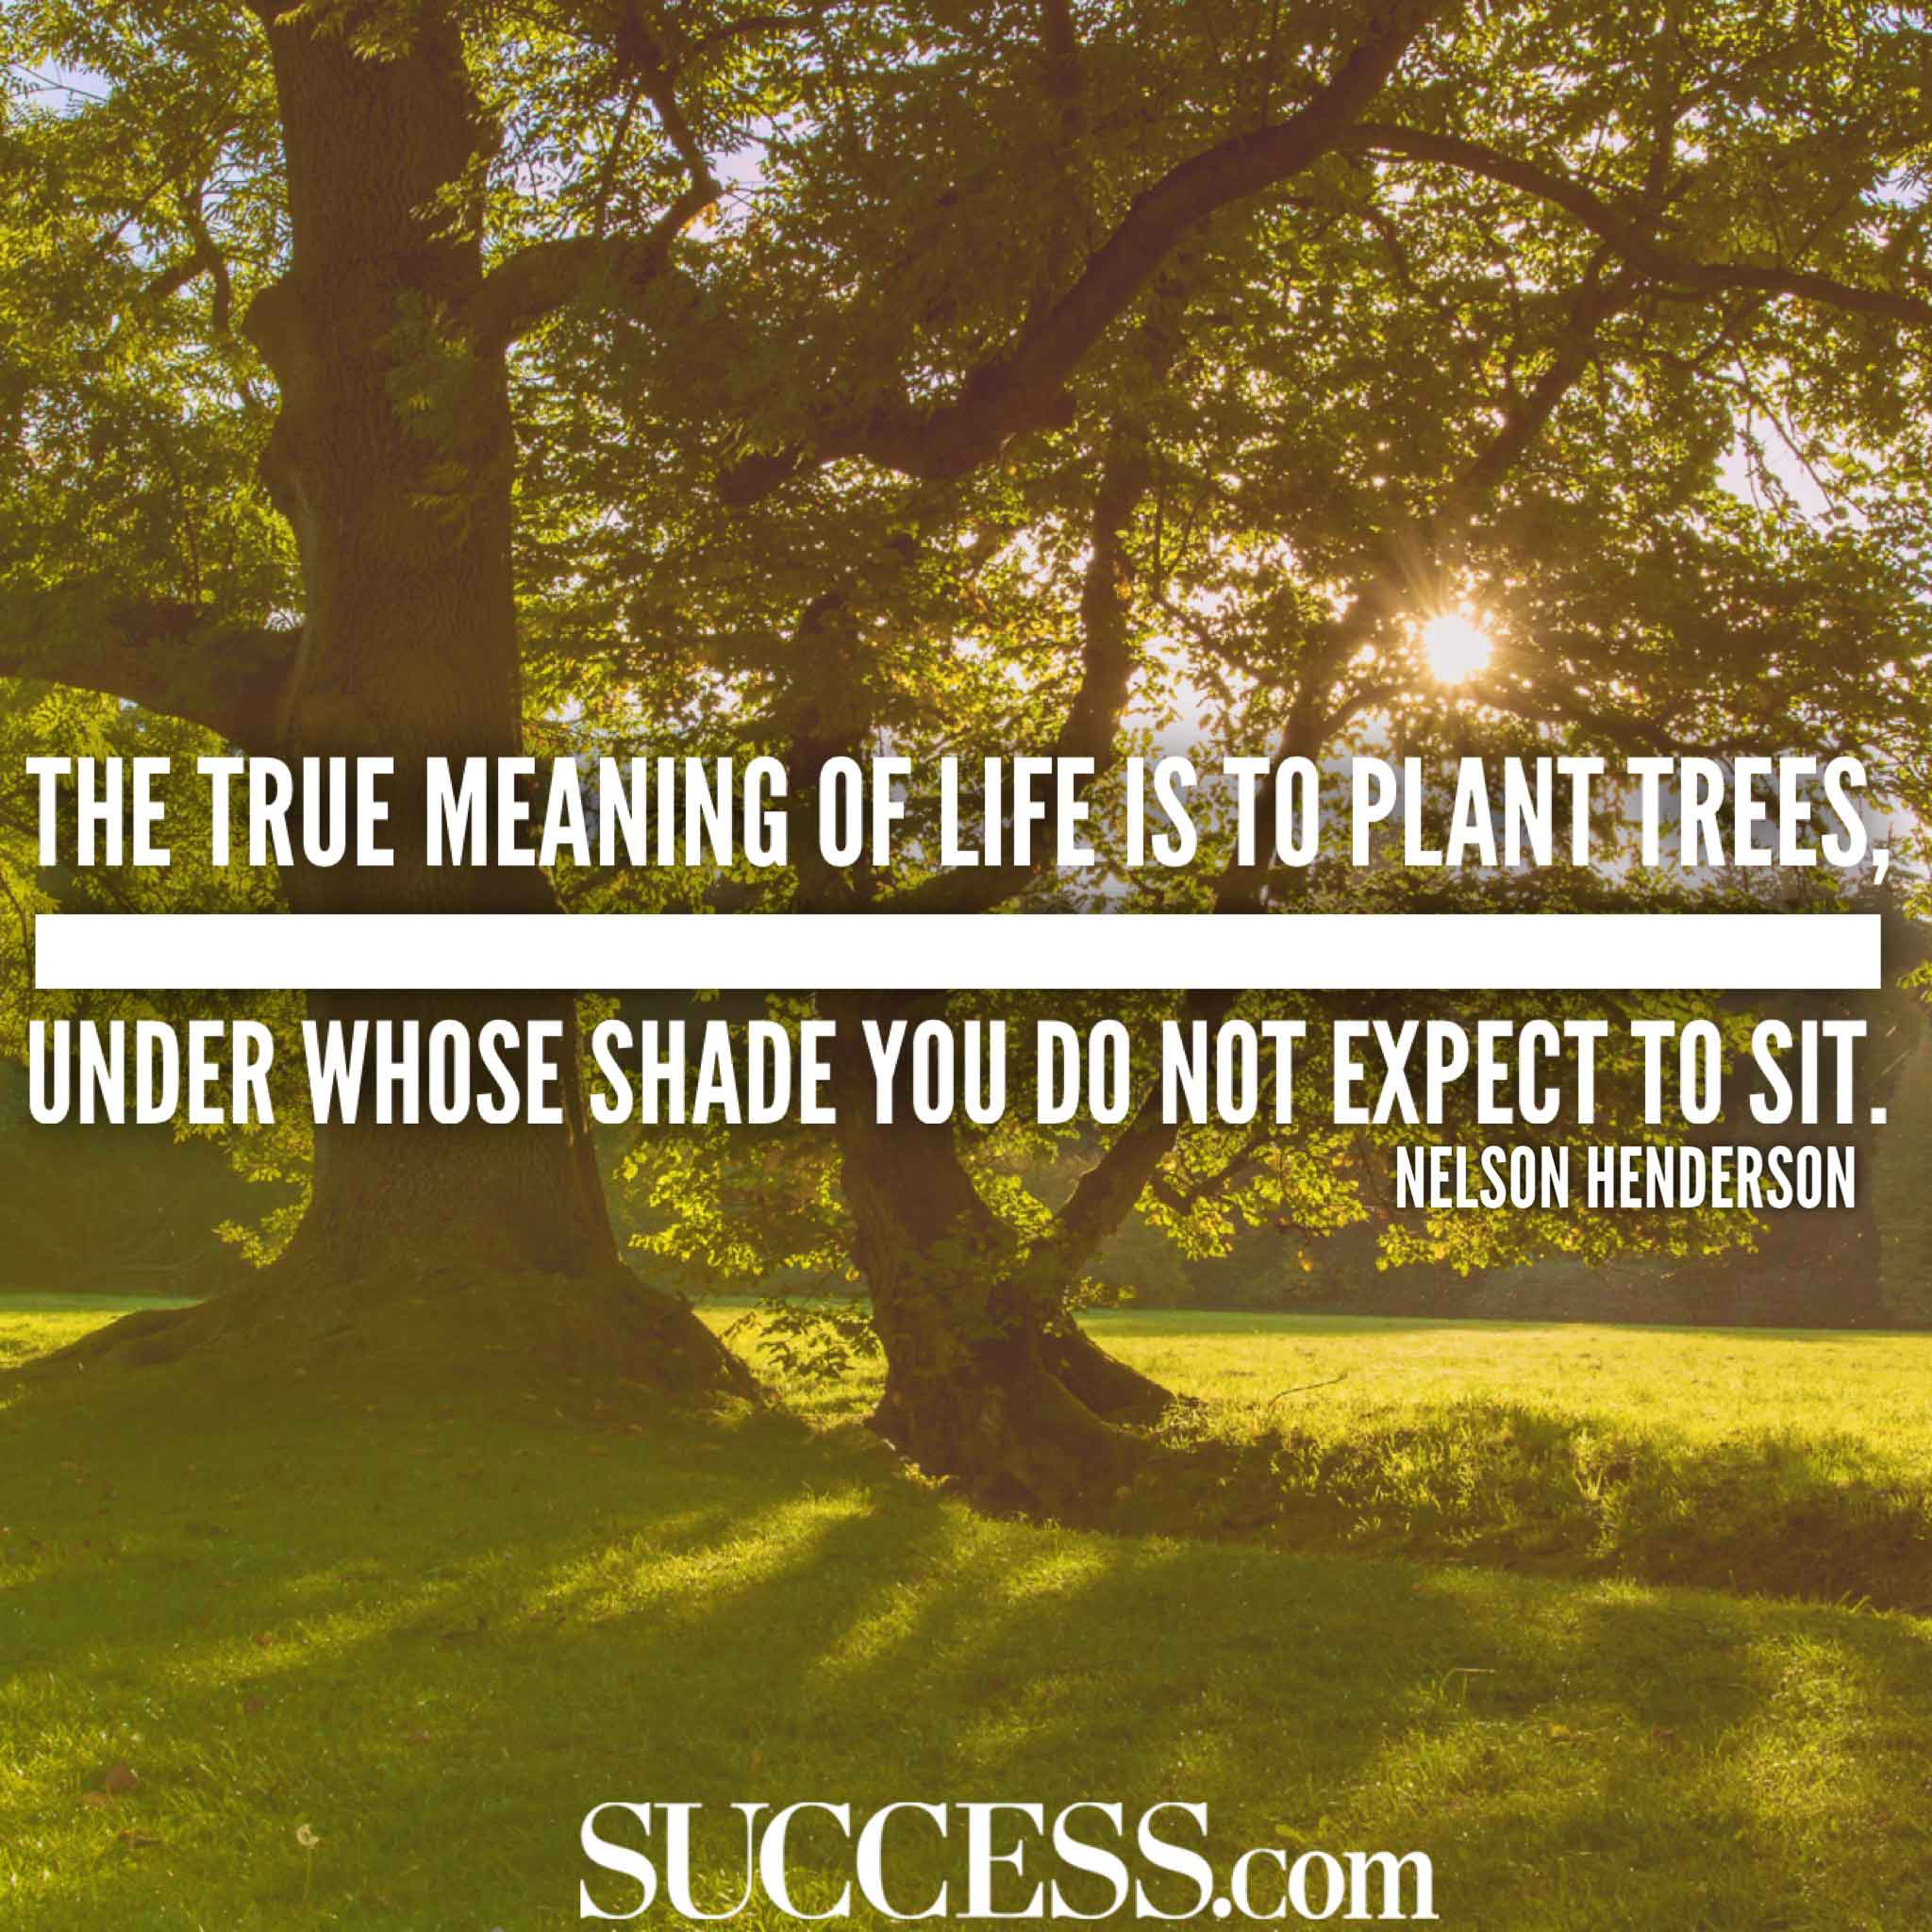 The Meaning of Life in 15 Wise Quotes